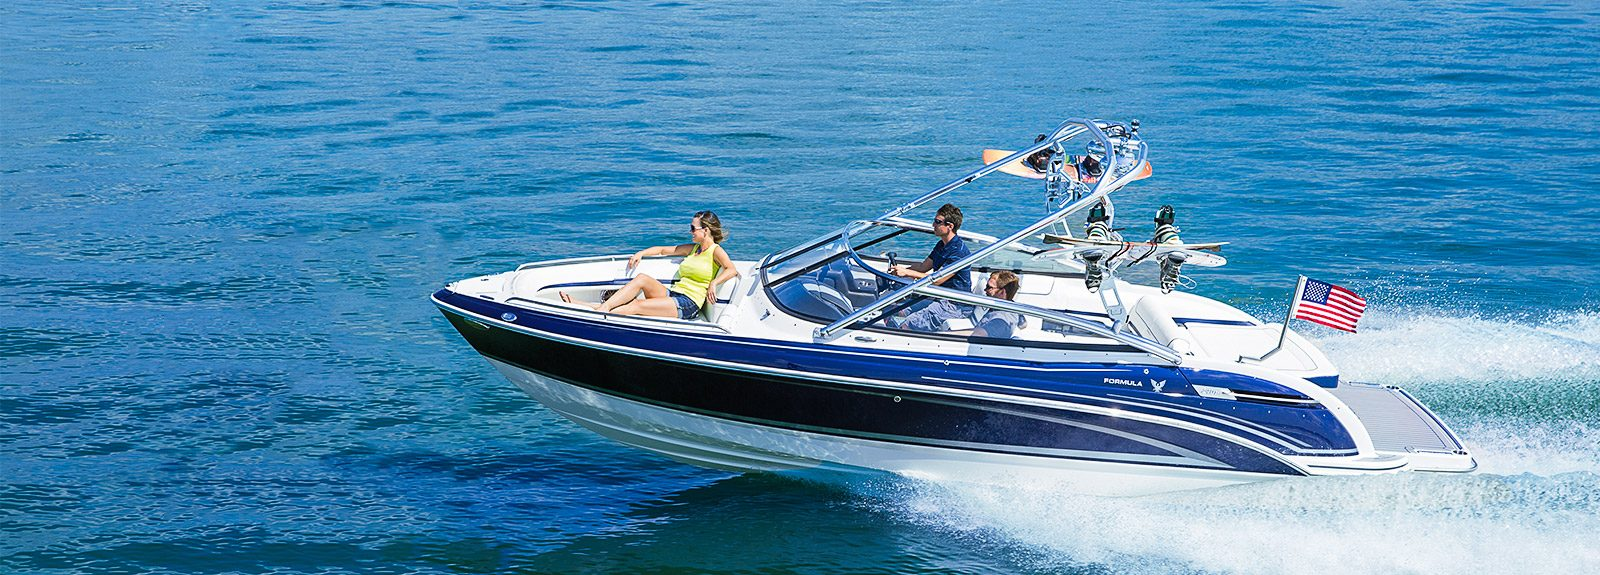 Water ski boat for wakeboard and much more